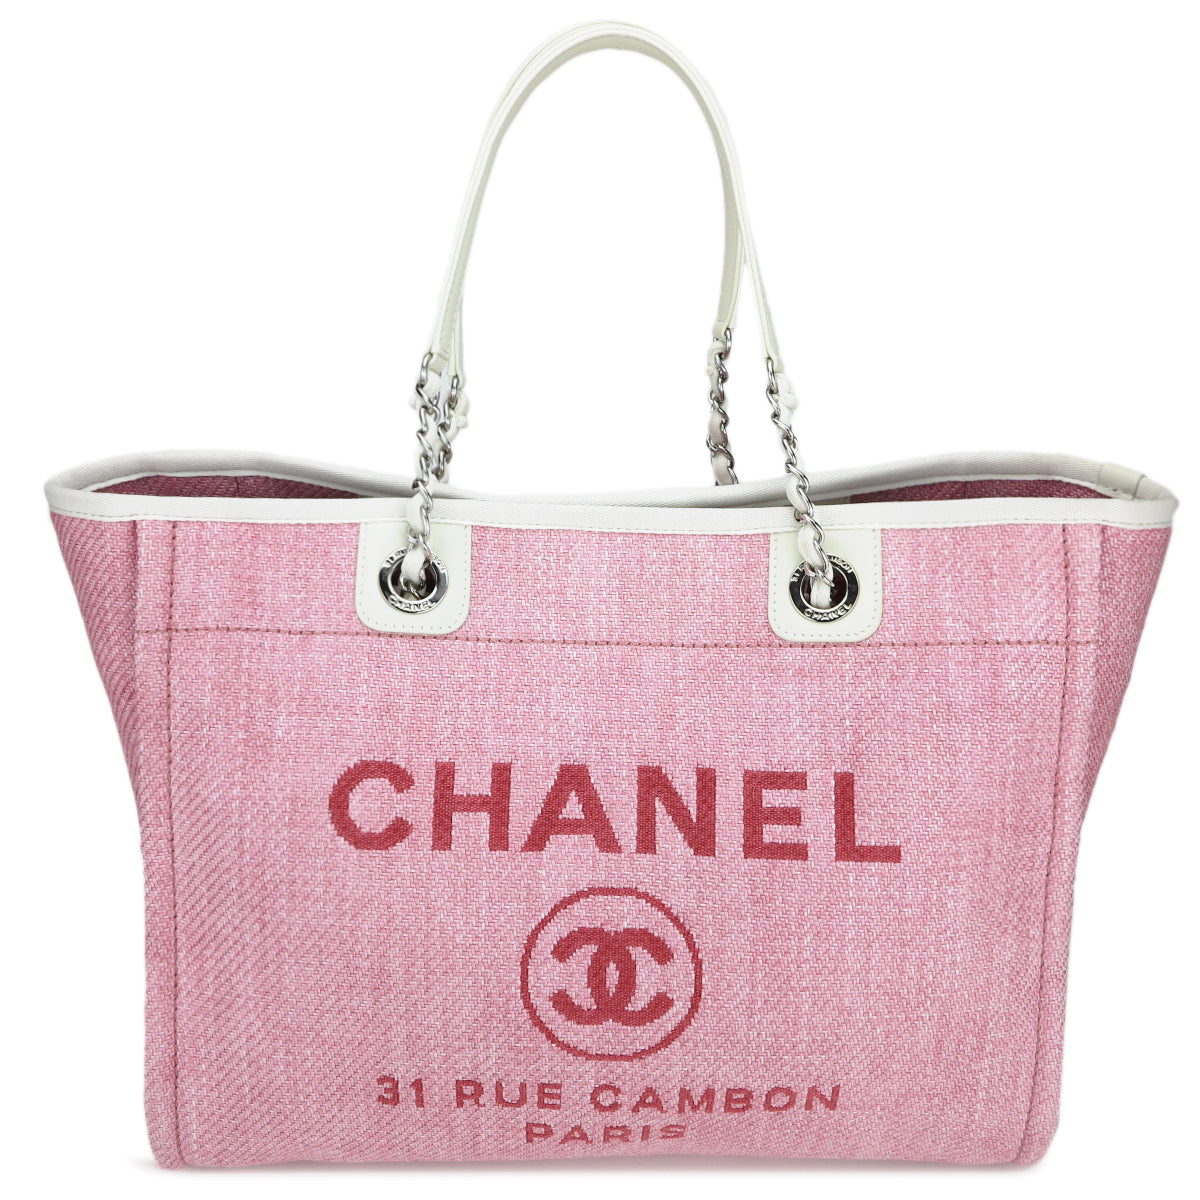 6de0437a9619 CHANEL Small Deauville Tote in Pink Canvas - Dearluxe.com ...